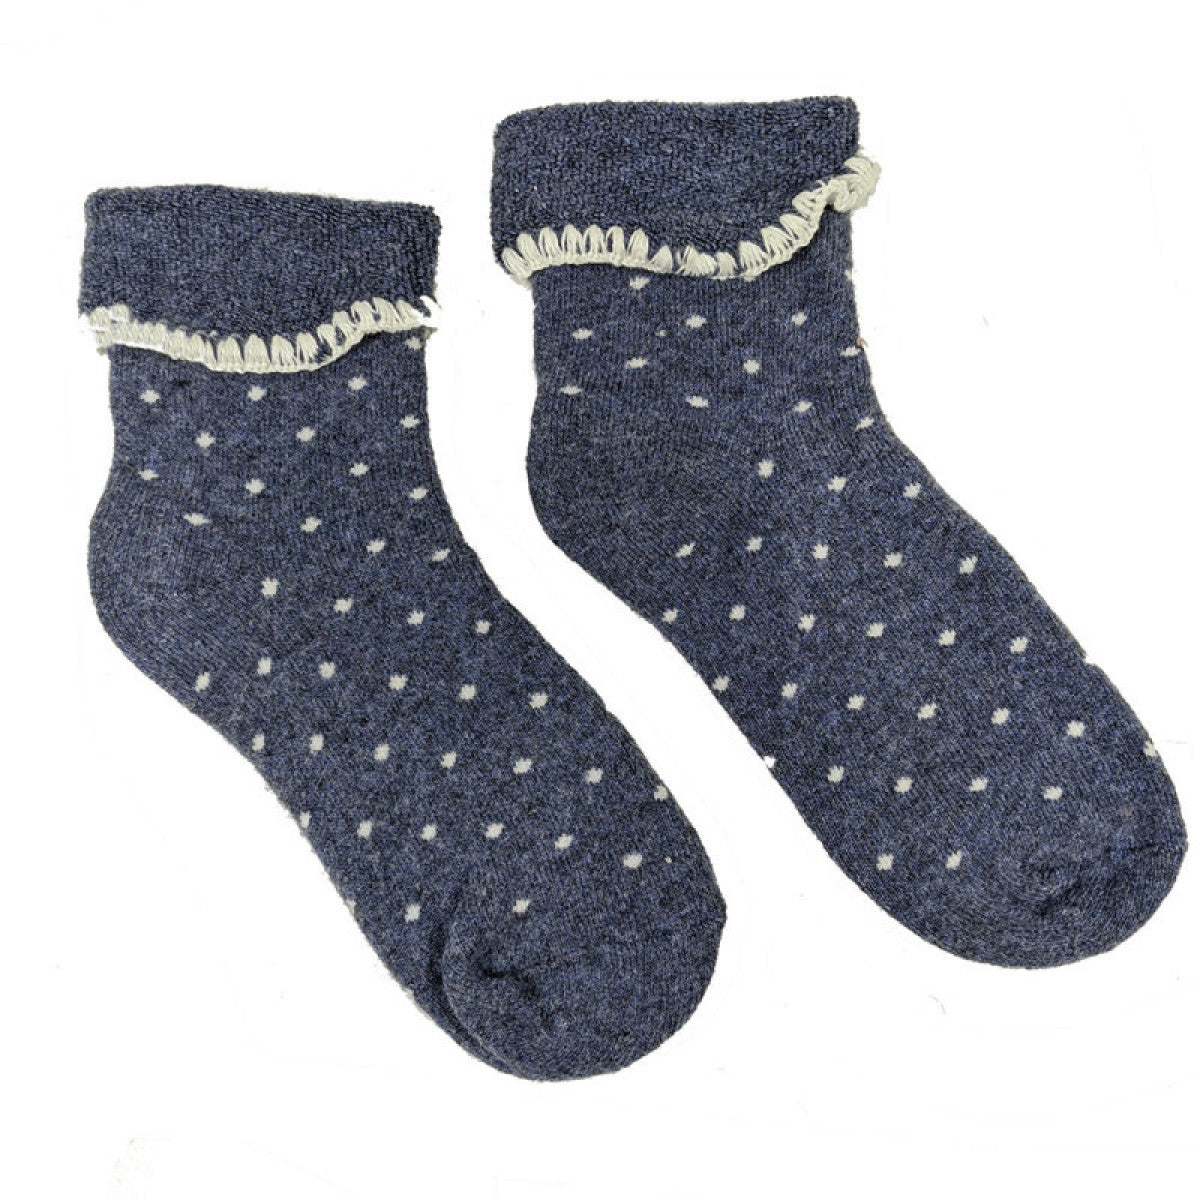 Luxurious Cuff House Socks in Blue with Dots